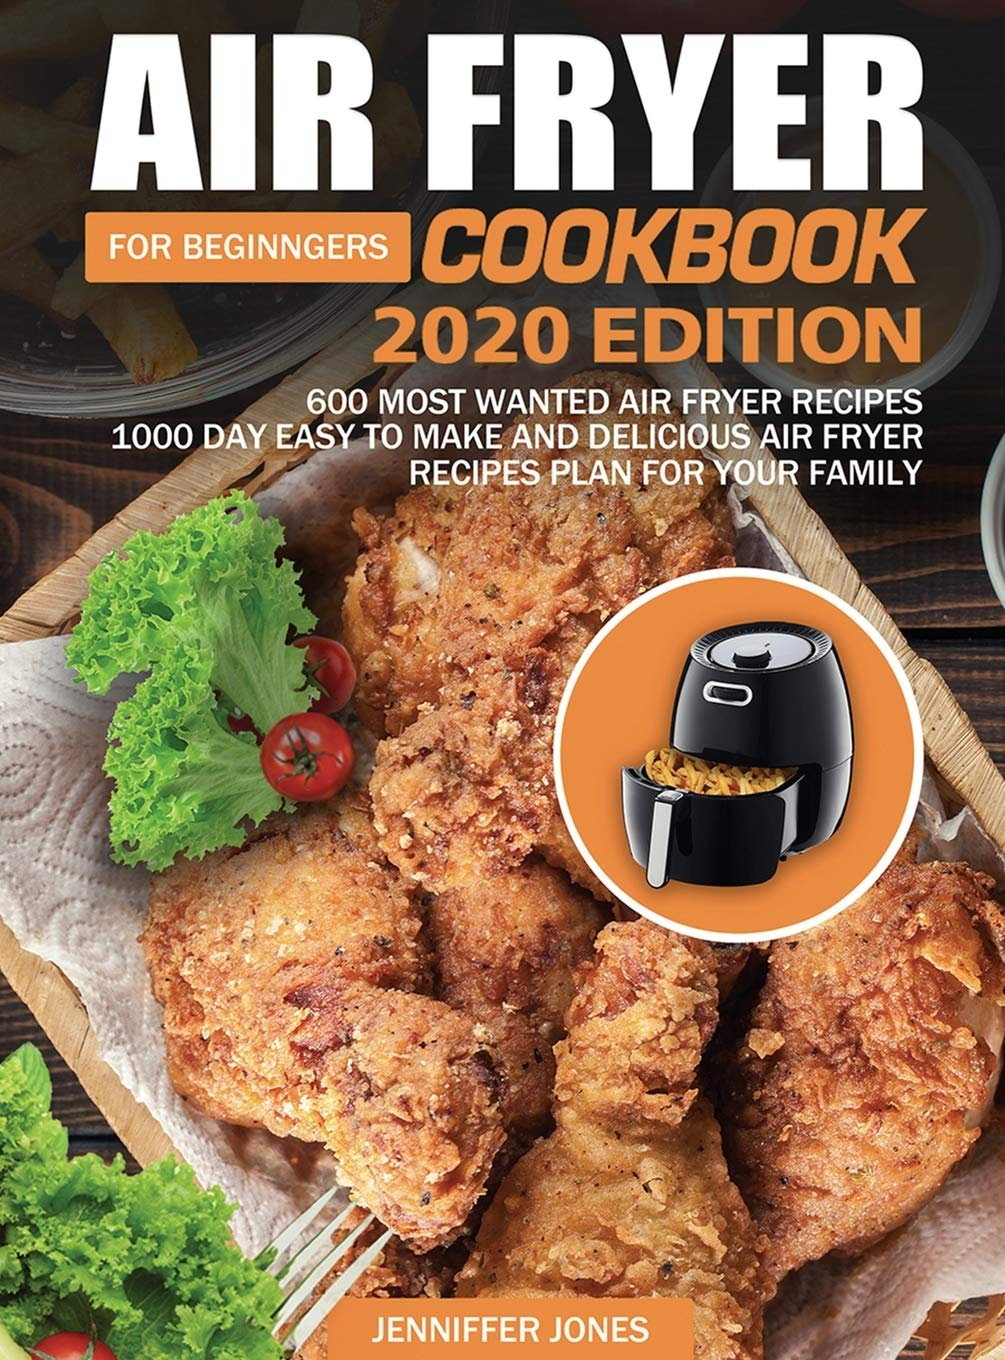 Air Fryer Cookbook For Beginners #2020: 600 Most Wanted Air Fryer Recipes: 1000 Day Easy to Make and Delicious Air Fryer Recipes Plan For Your Family 1